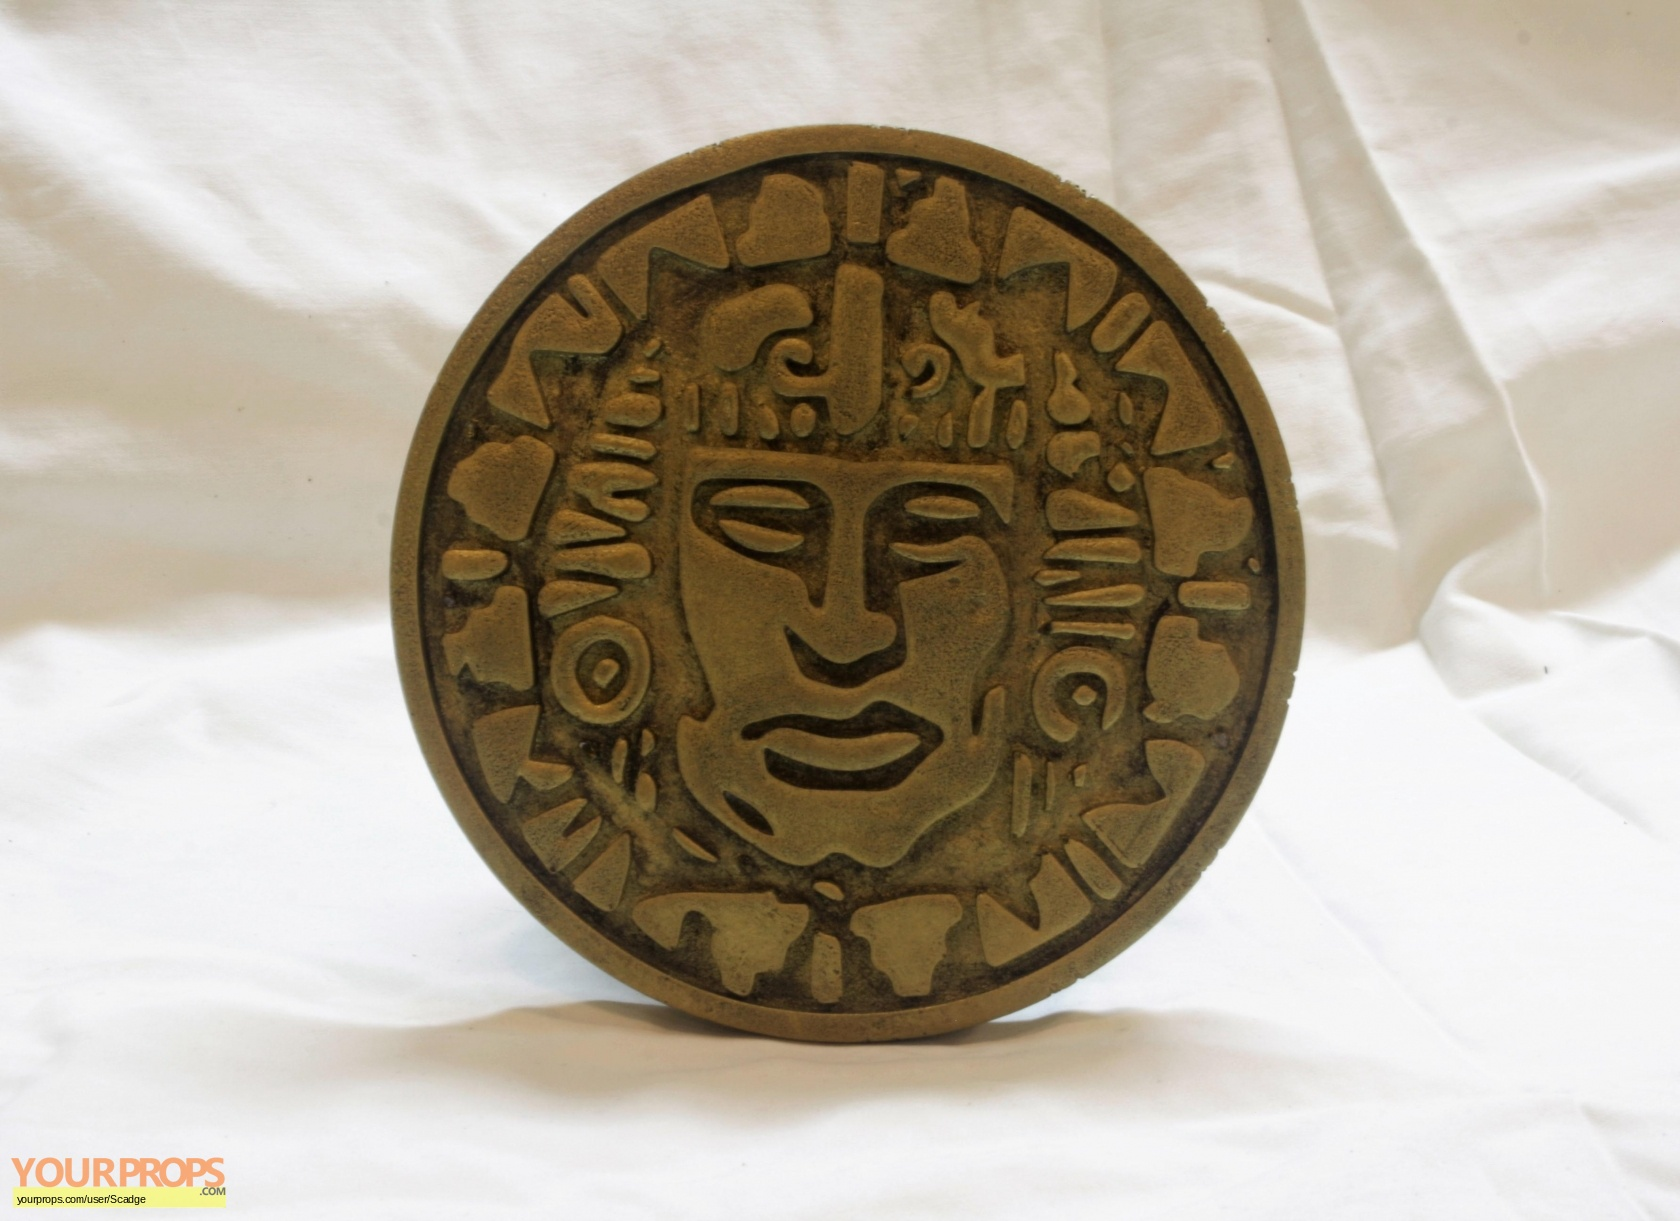 Legends of the hidden temple pendant of life made from scratch legends of the hidden temple made from scratch movie prop aloadofball Gallery